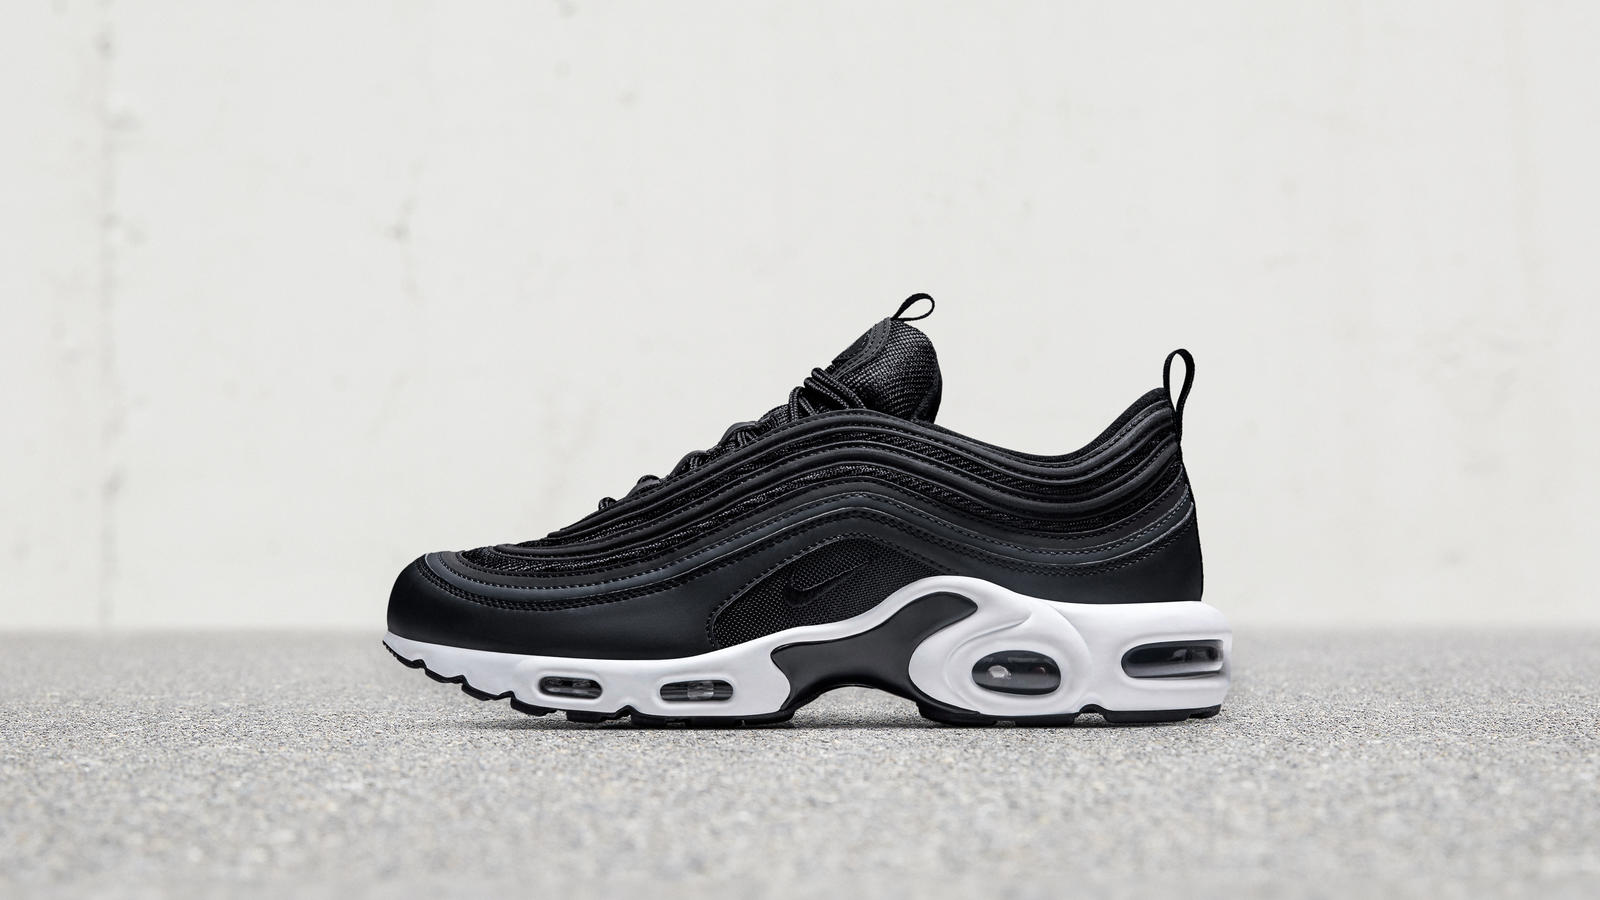 buy online ffe8a fce93 Nike Air Max Plus / 97 - Nike News